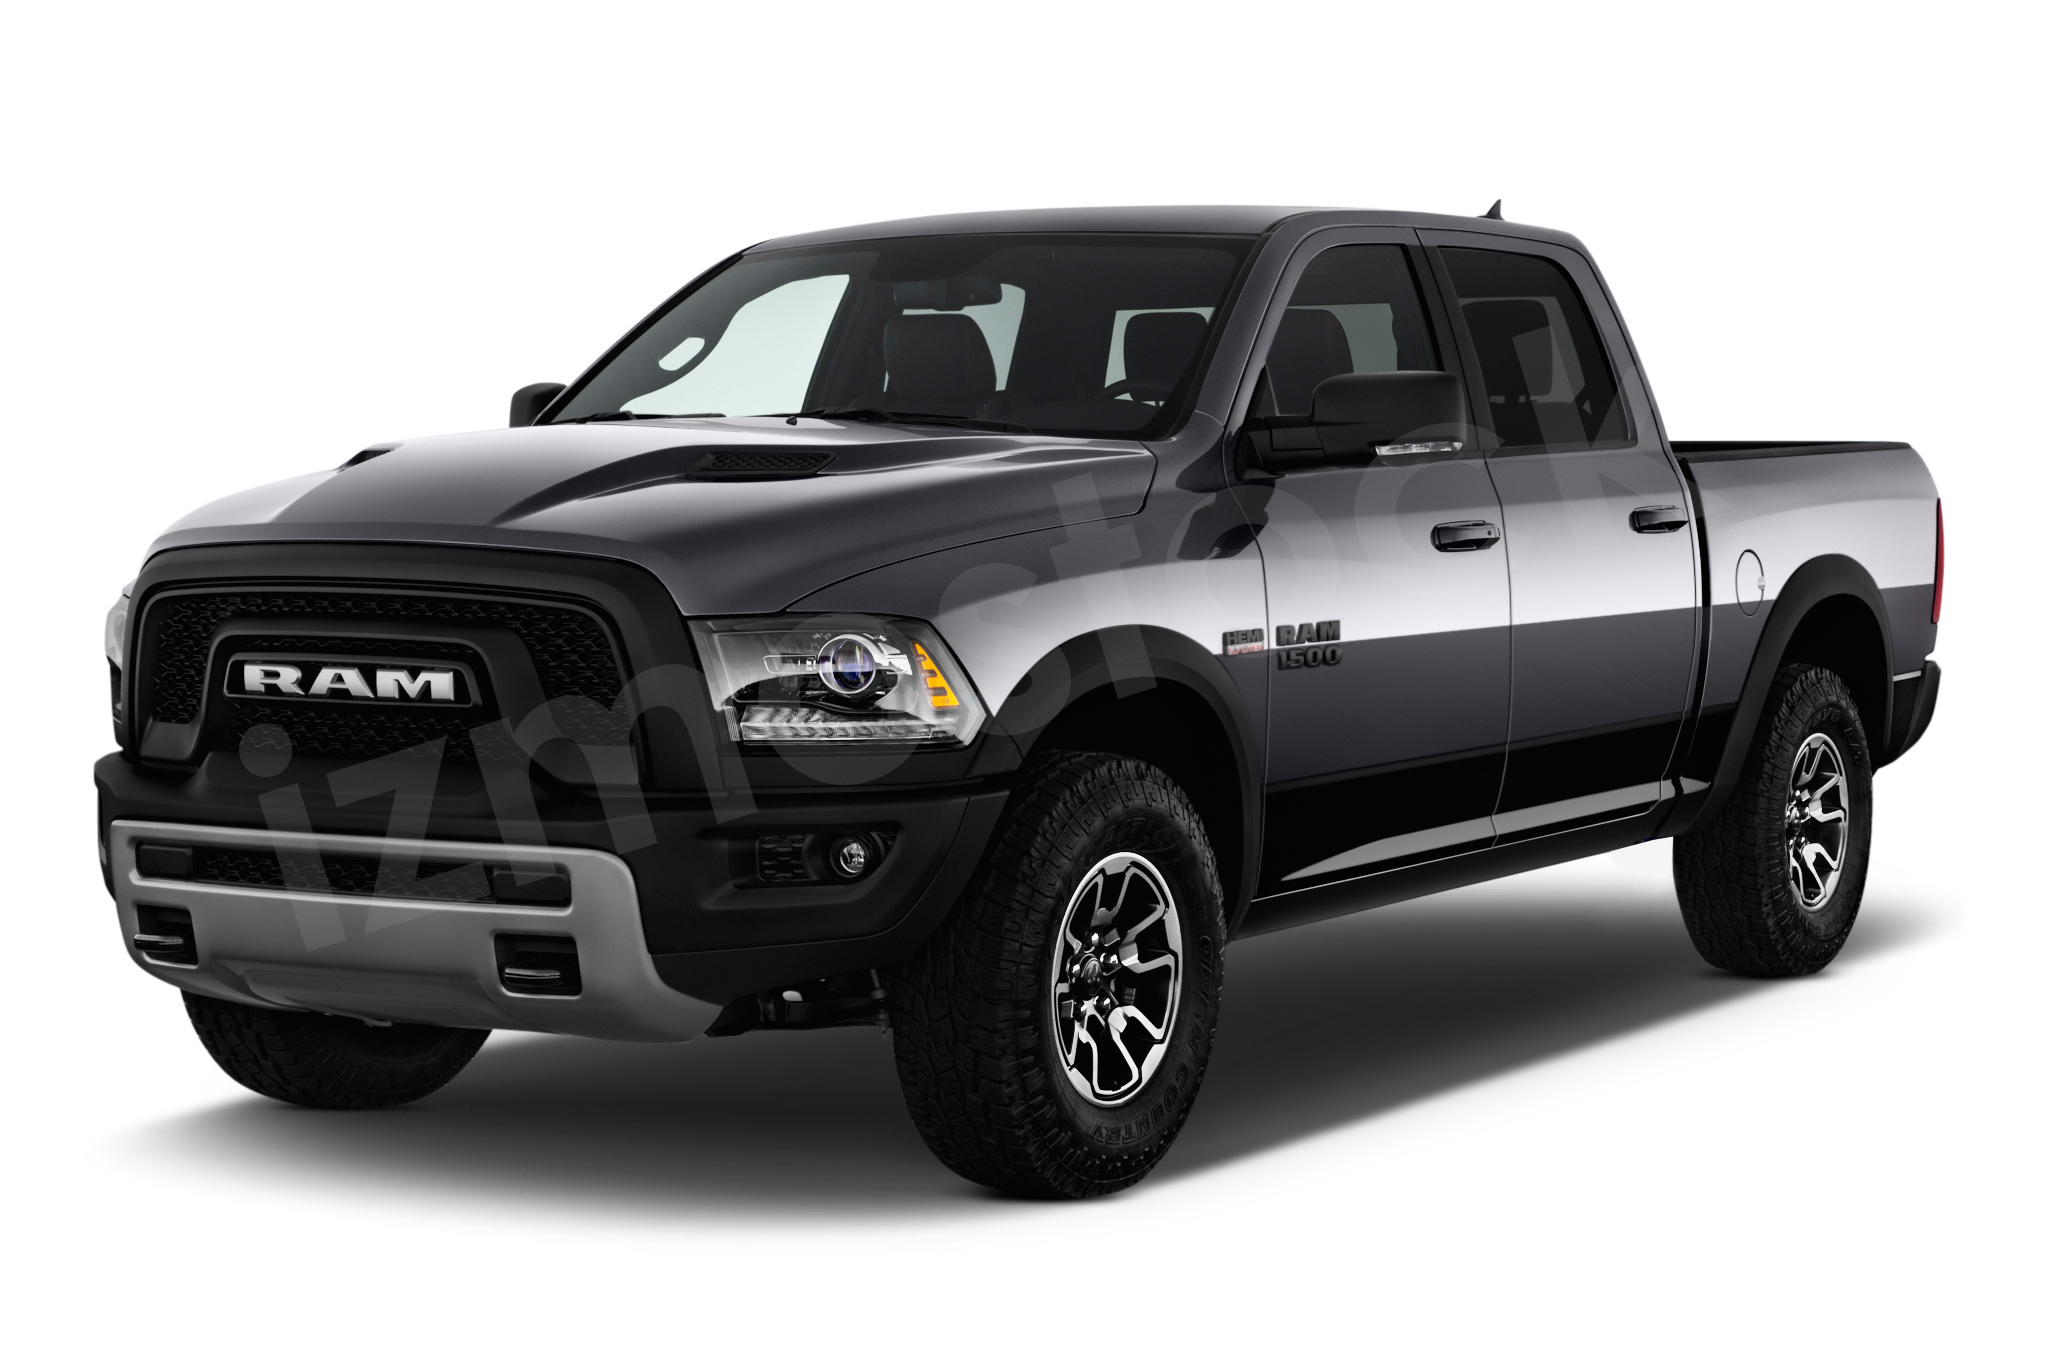 do it all truck 2017 ram 1500 rebel review. Black Bedroom Furniture Sets. Home Design Ideas